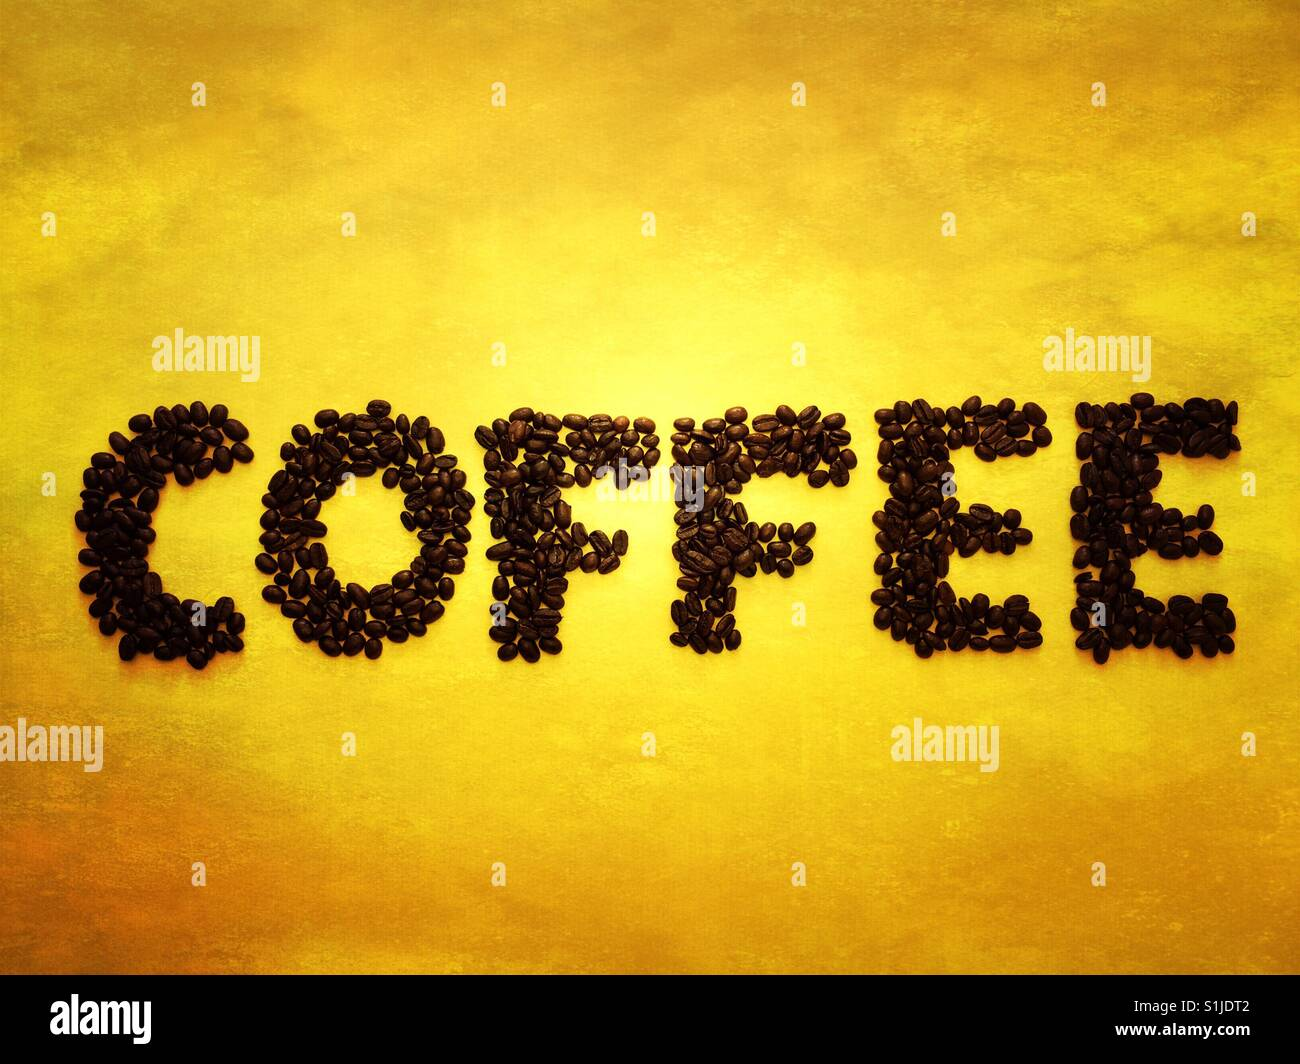 Coffee beans spelling out coffee on a yellow background - Stock Image